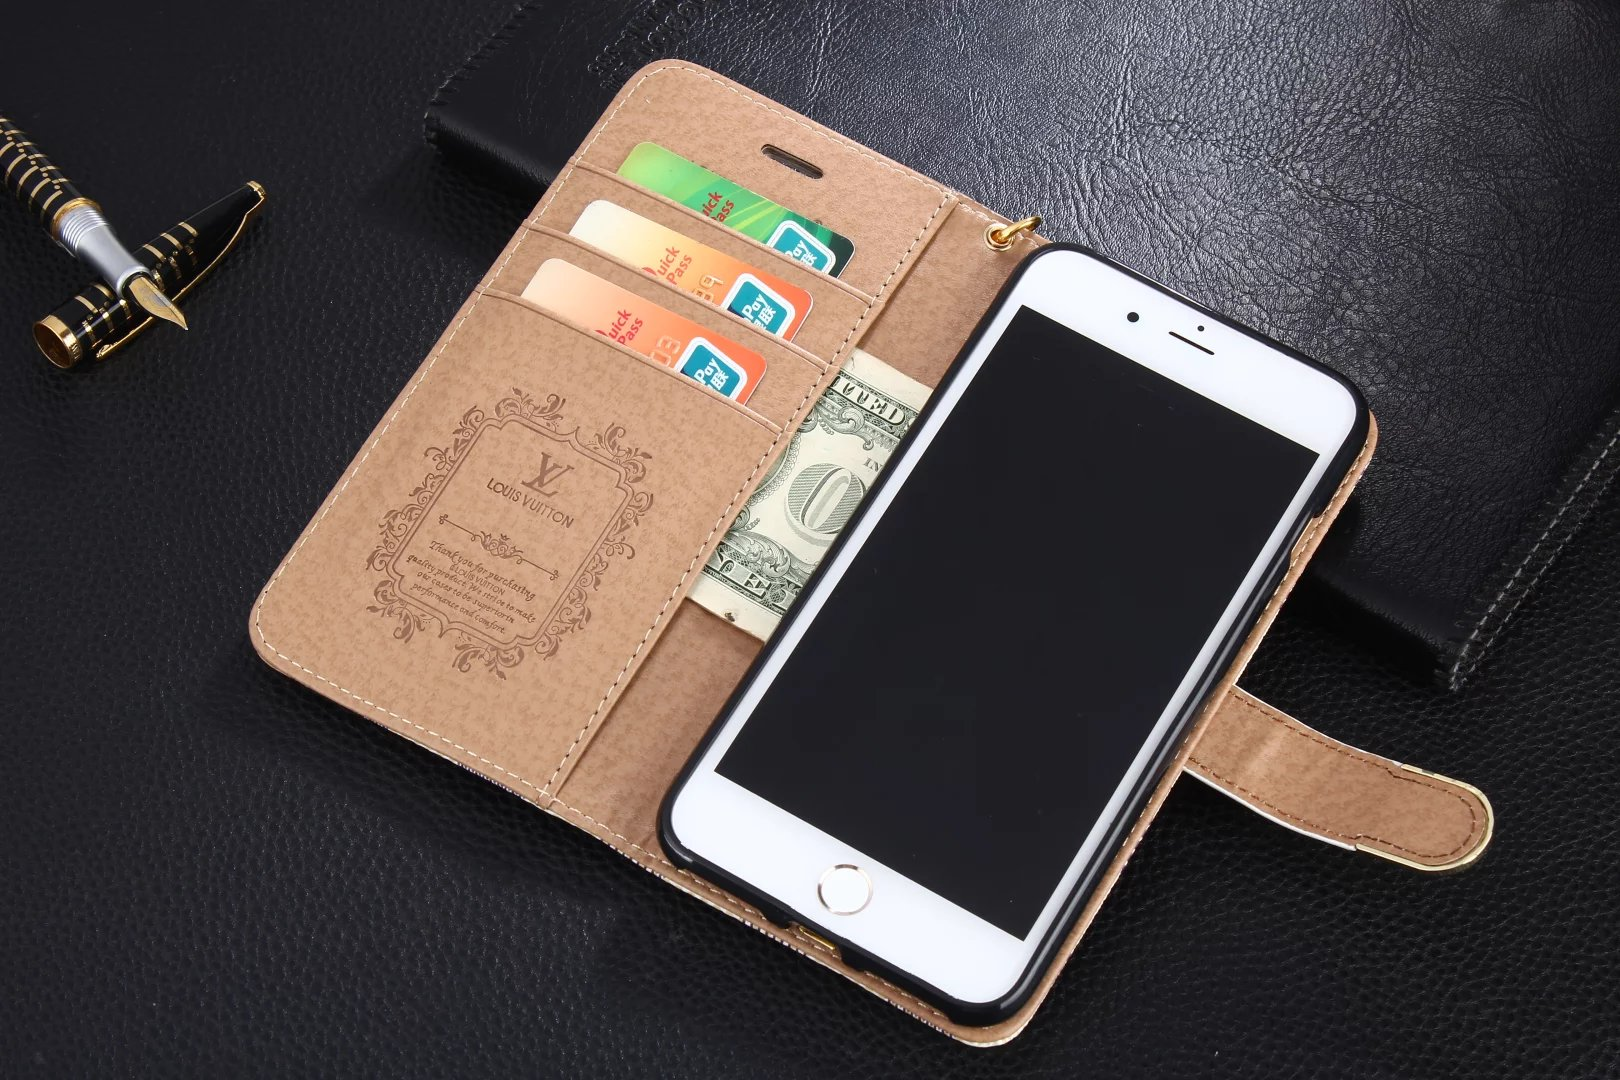 top cases for iphone 6 popular iphone 6 cases fashion iphone6 case create an iphone case apple i6 iphone launch date best site for iphone cases specification of iphone 6 apple next iphone release date